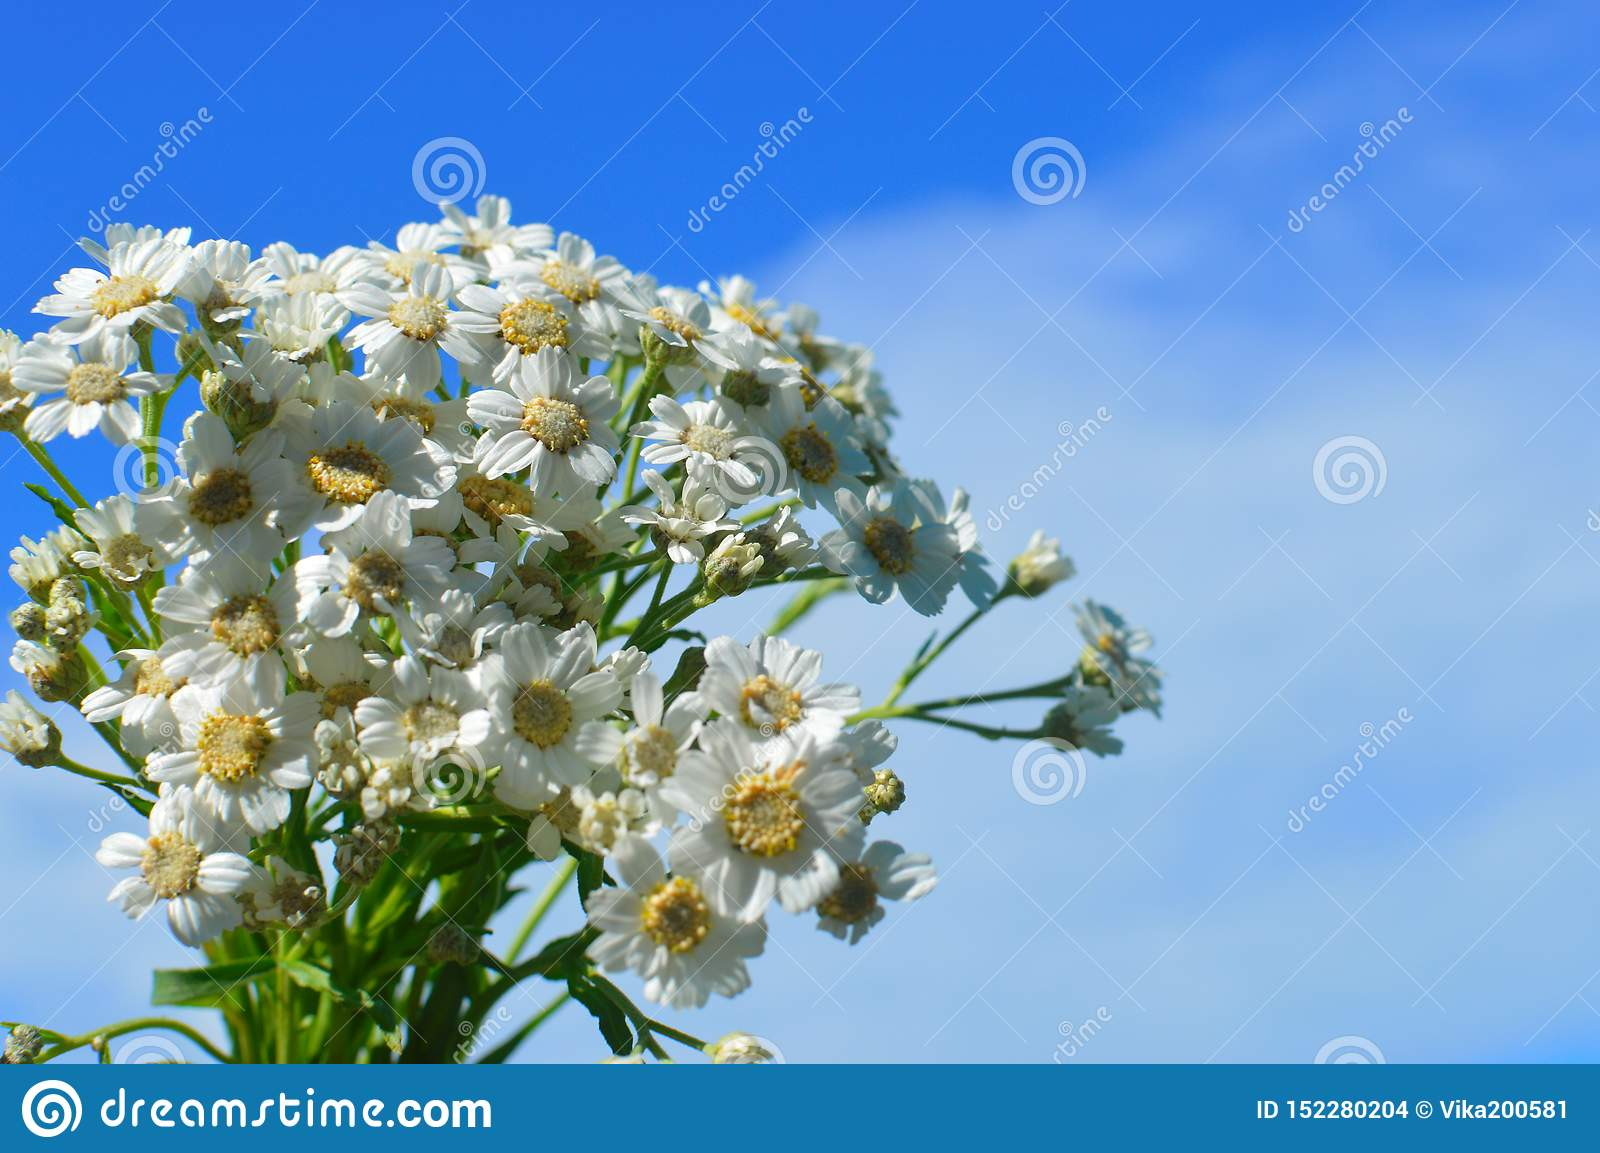 A bouquet white wild camomiles against the background of the blue sky.